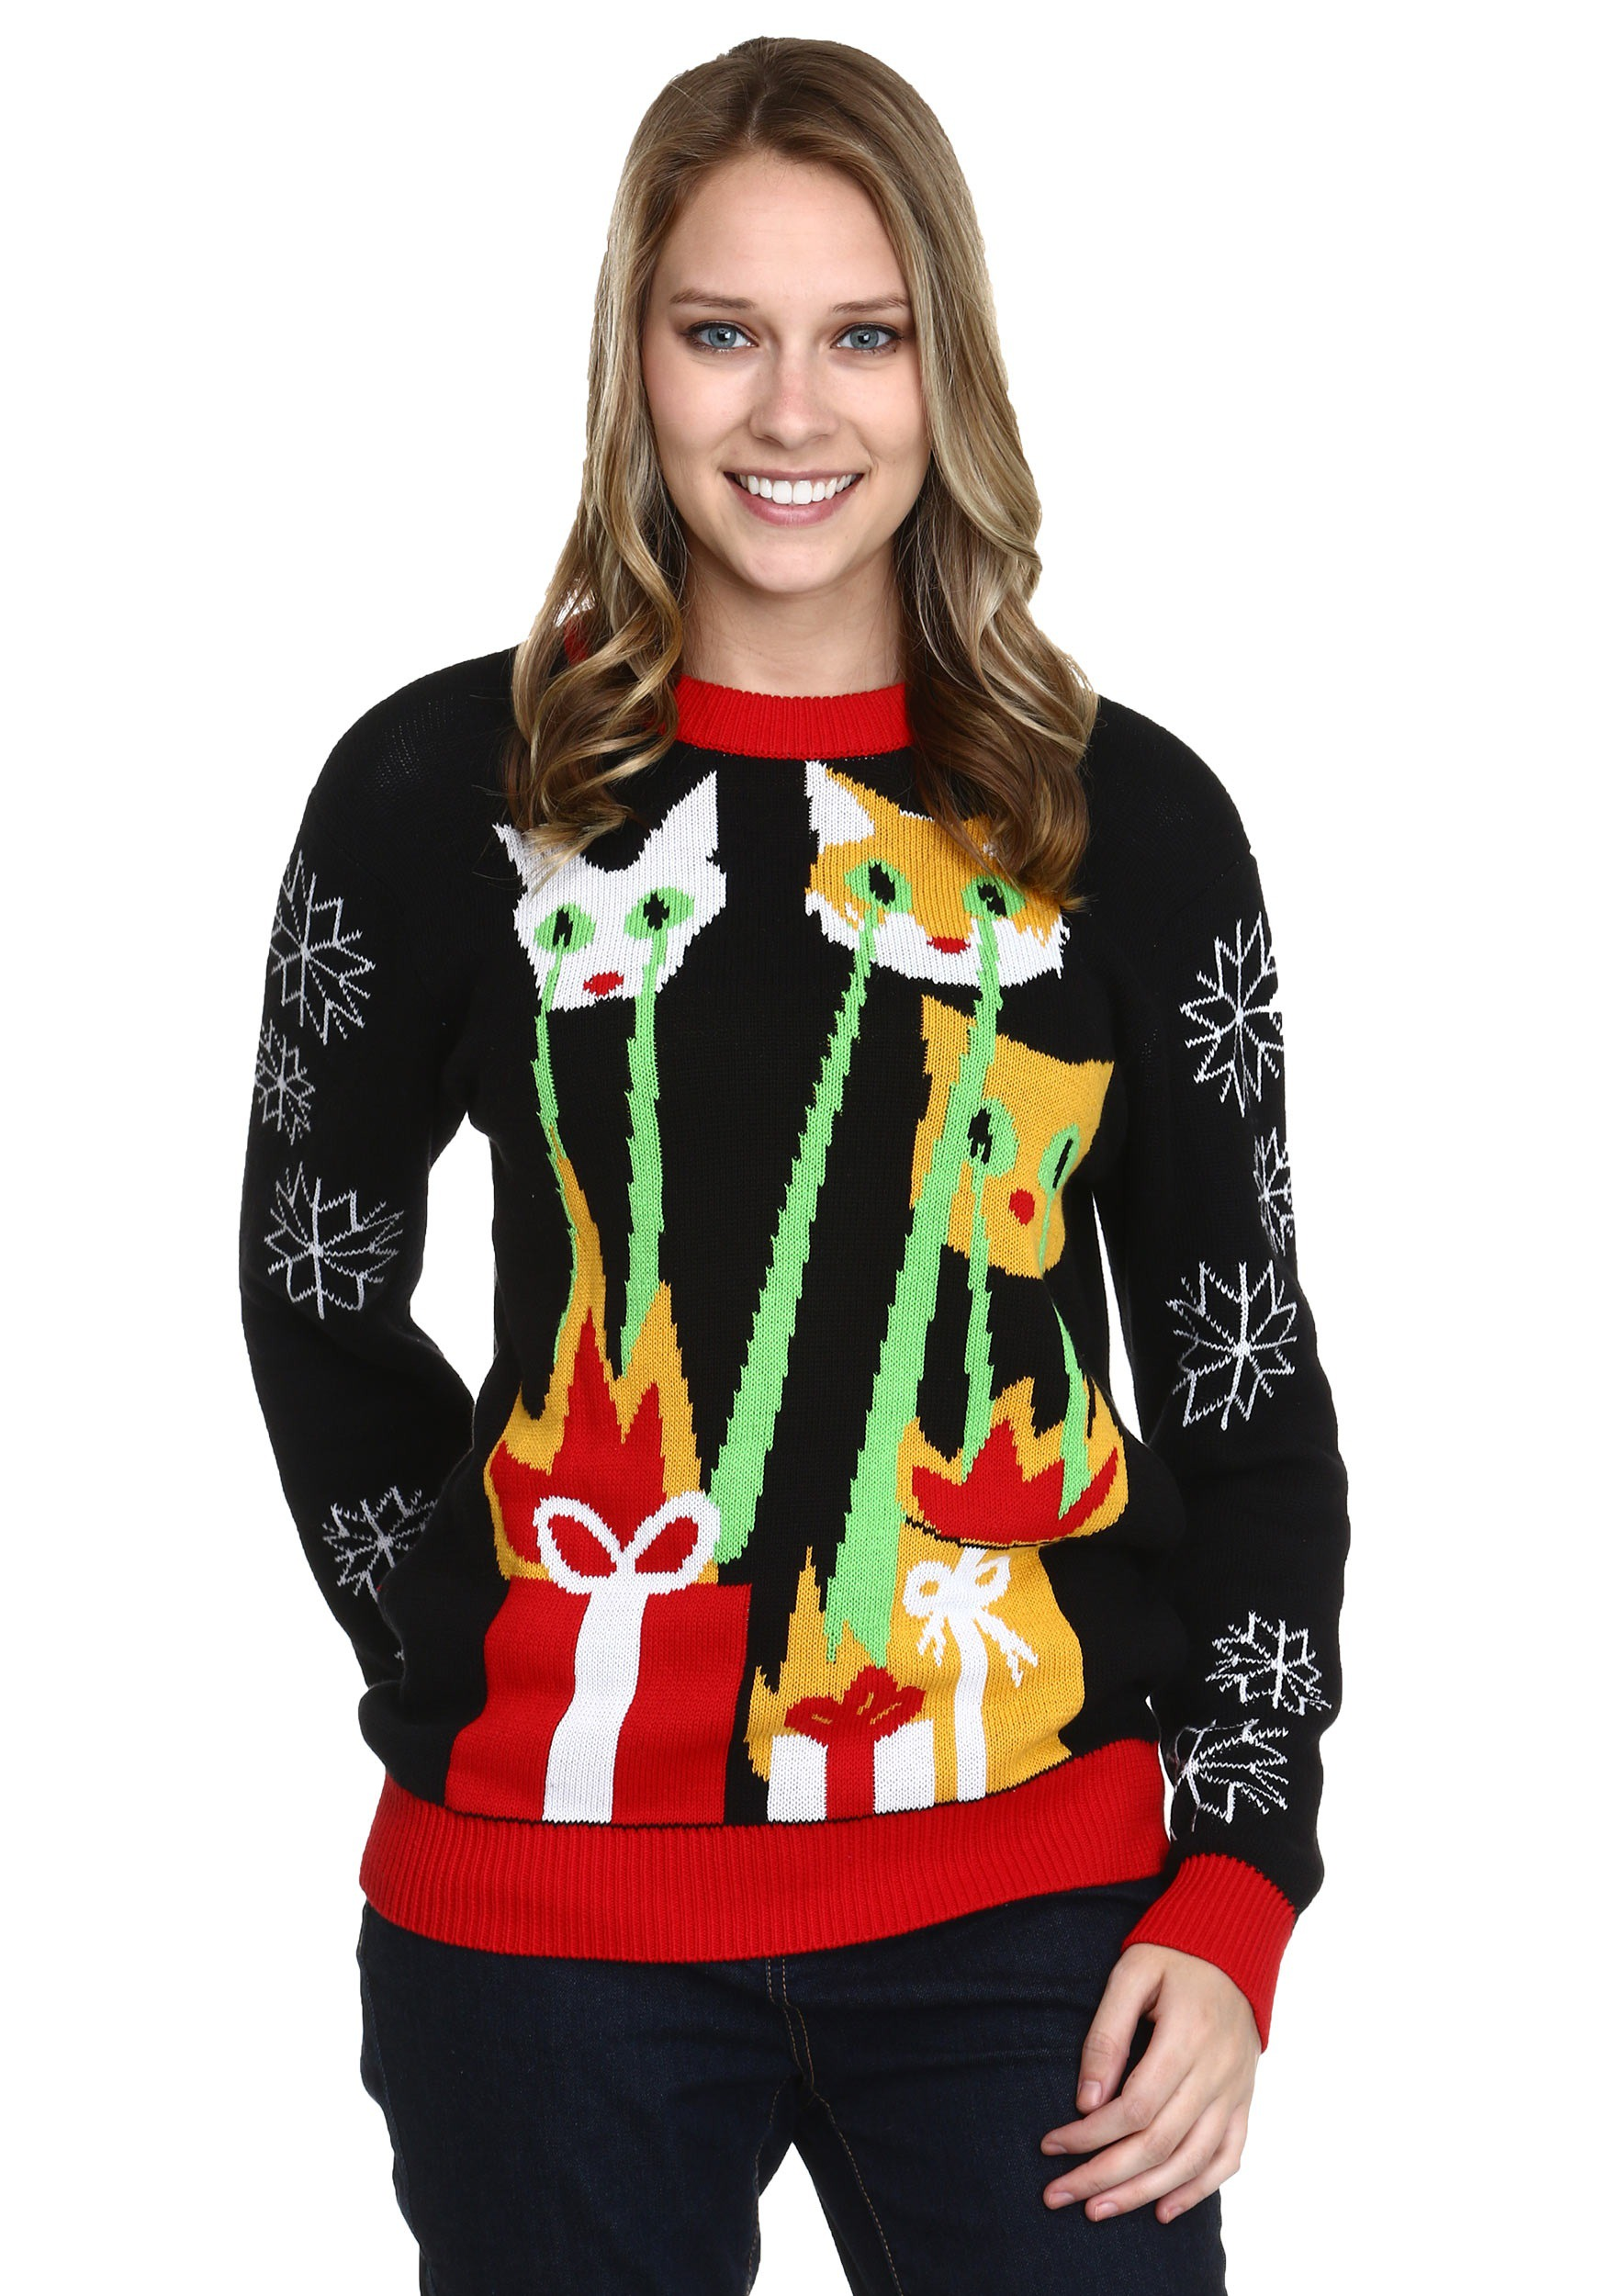 laser cat zillas ugly christmas sweater